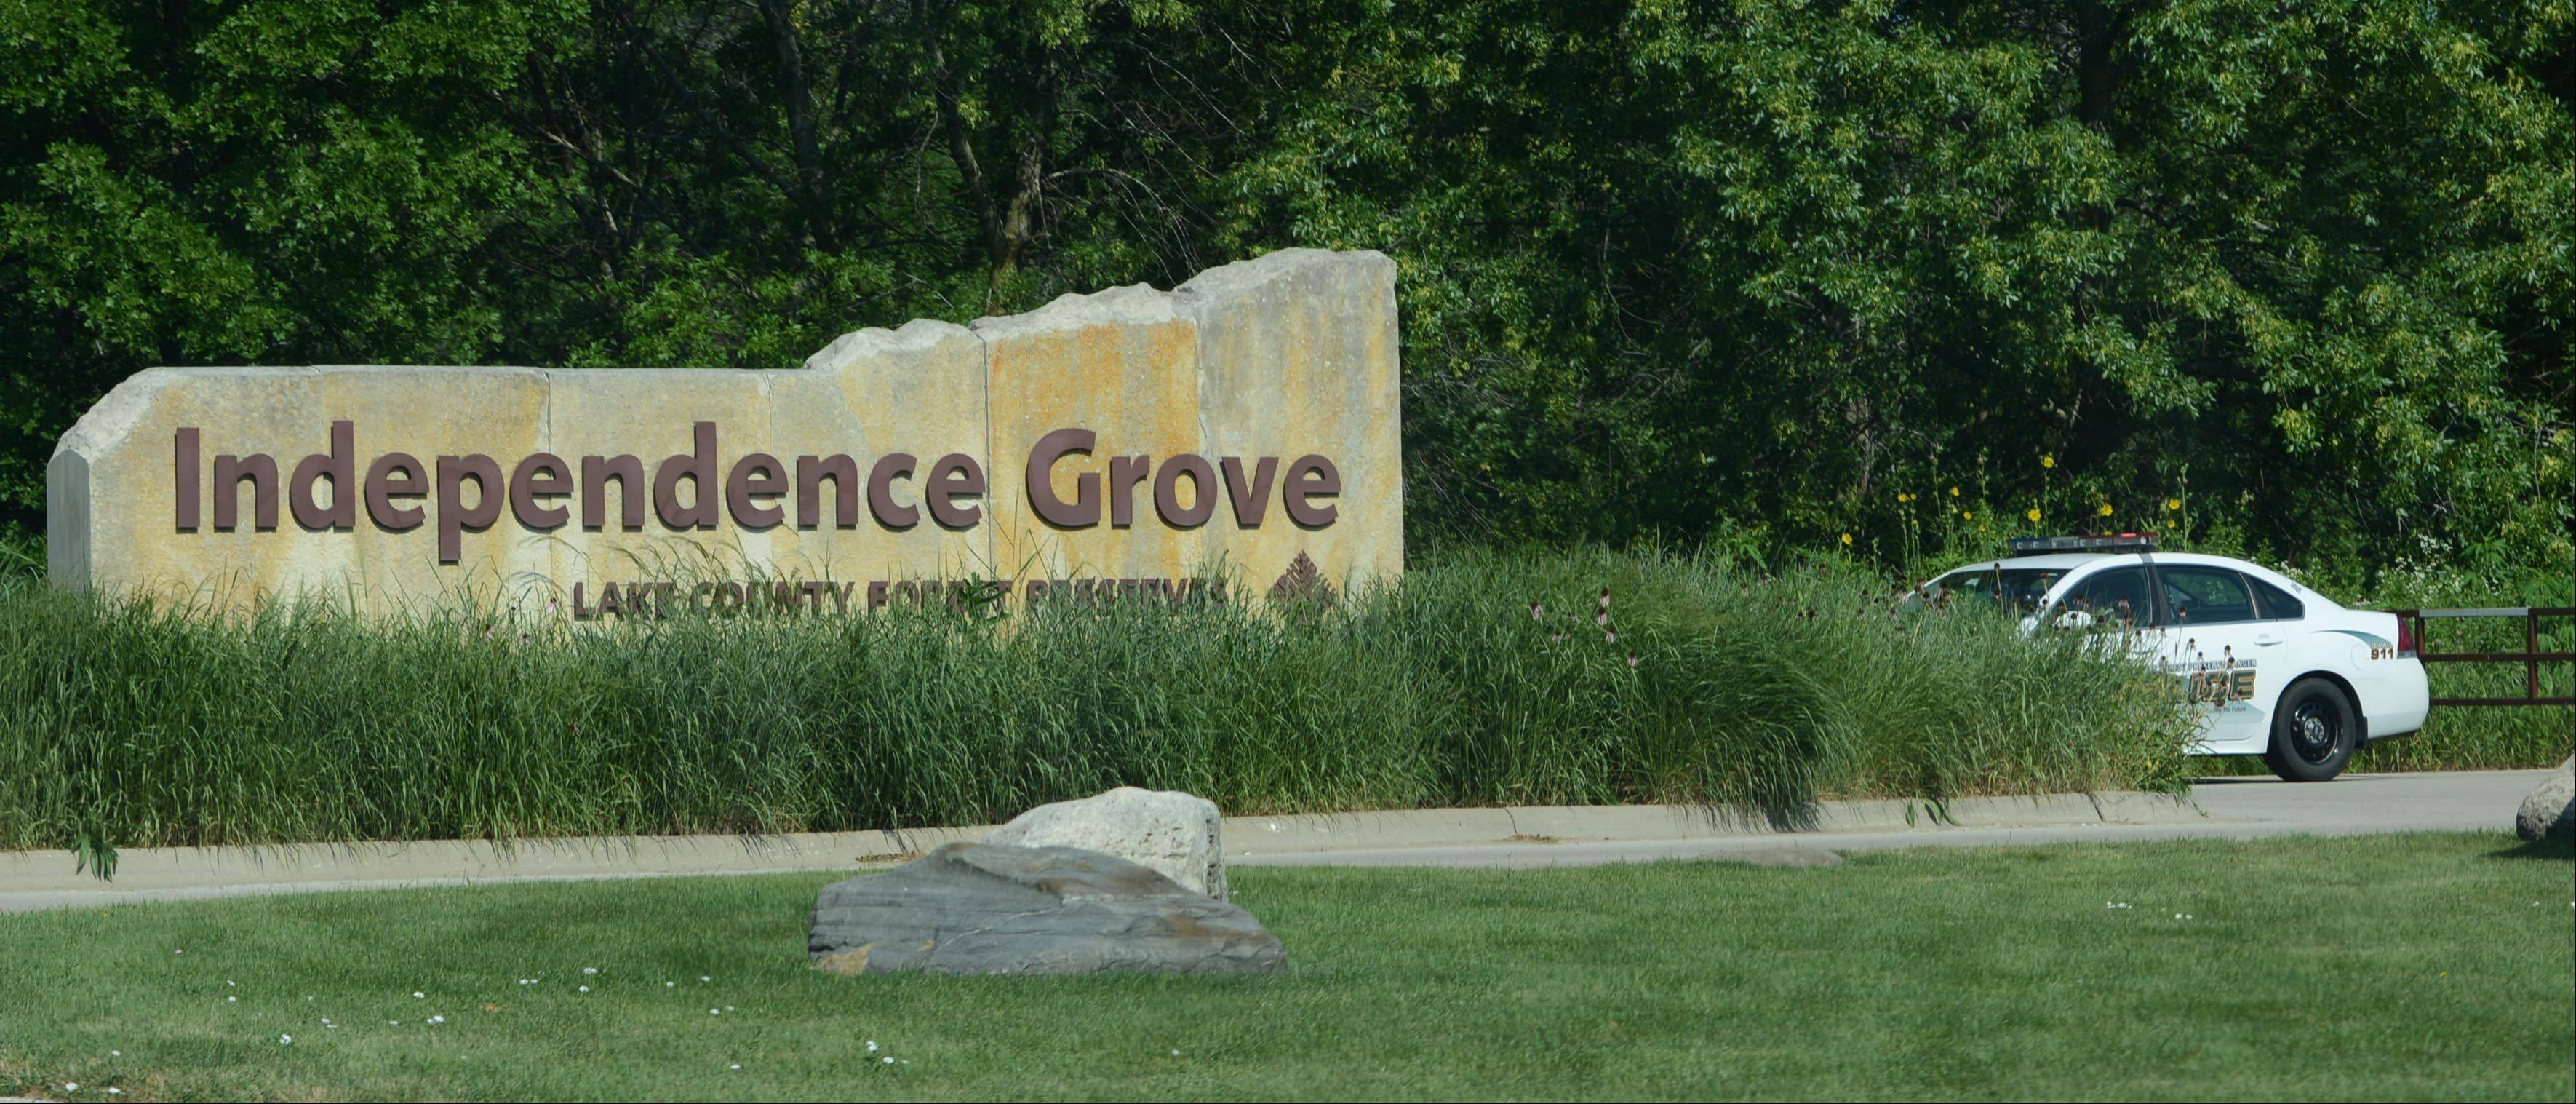 Lake County Forest Preserve District Ranger Police are blocking several entrances to Independence Grove Forest Preserve on Wednesday, following a bomb threat received Tuesday night. The preserve near Libertyville will remain closed until further notice.